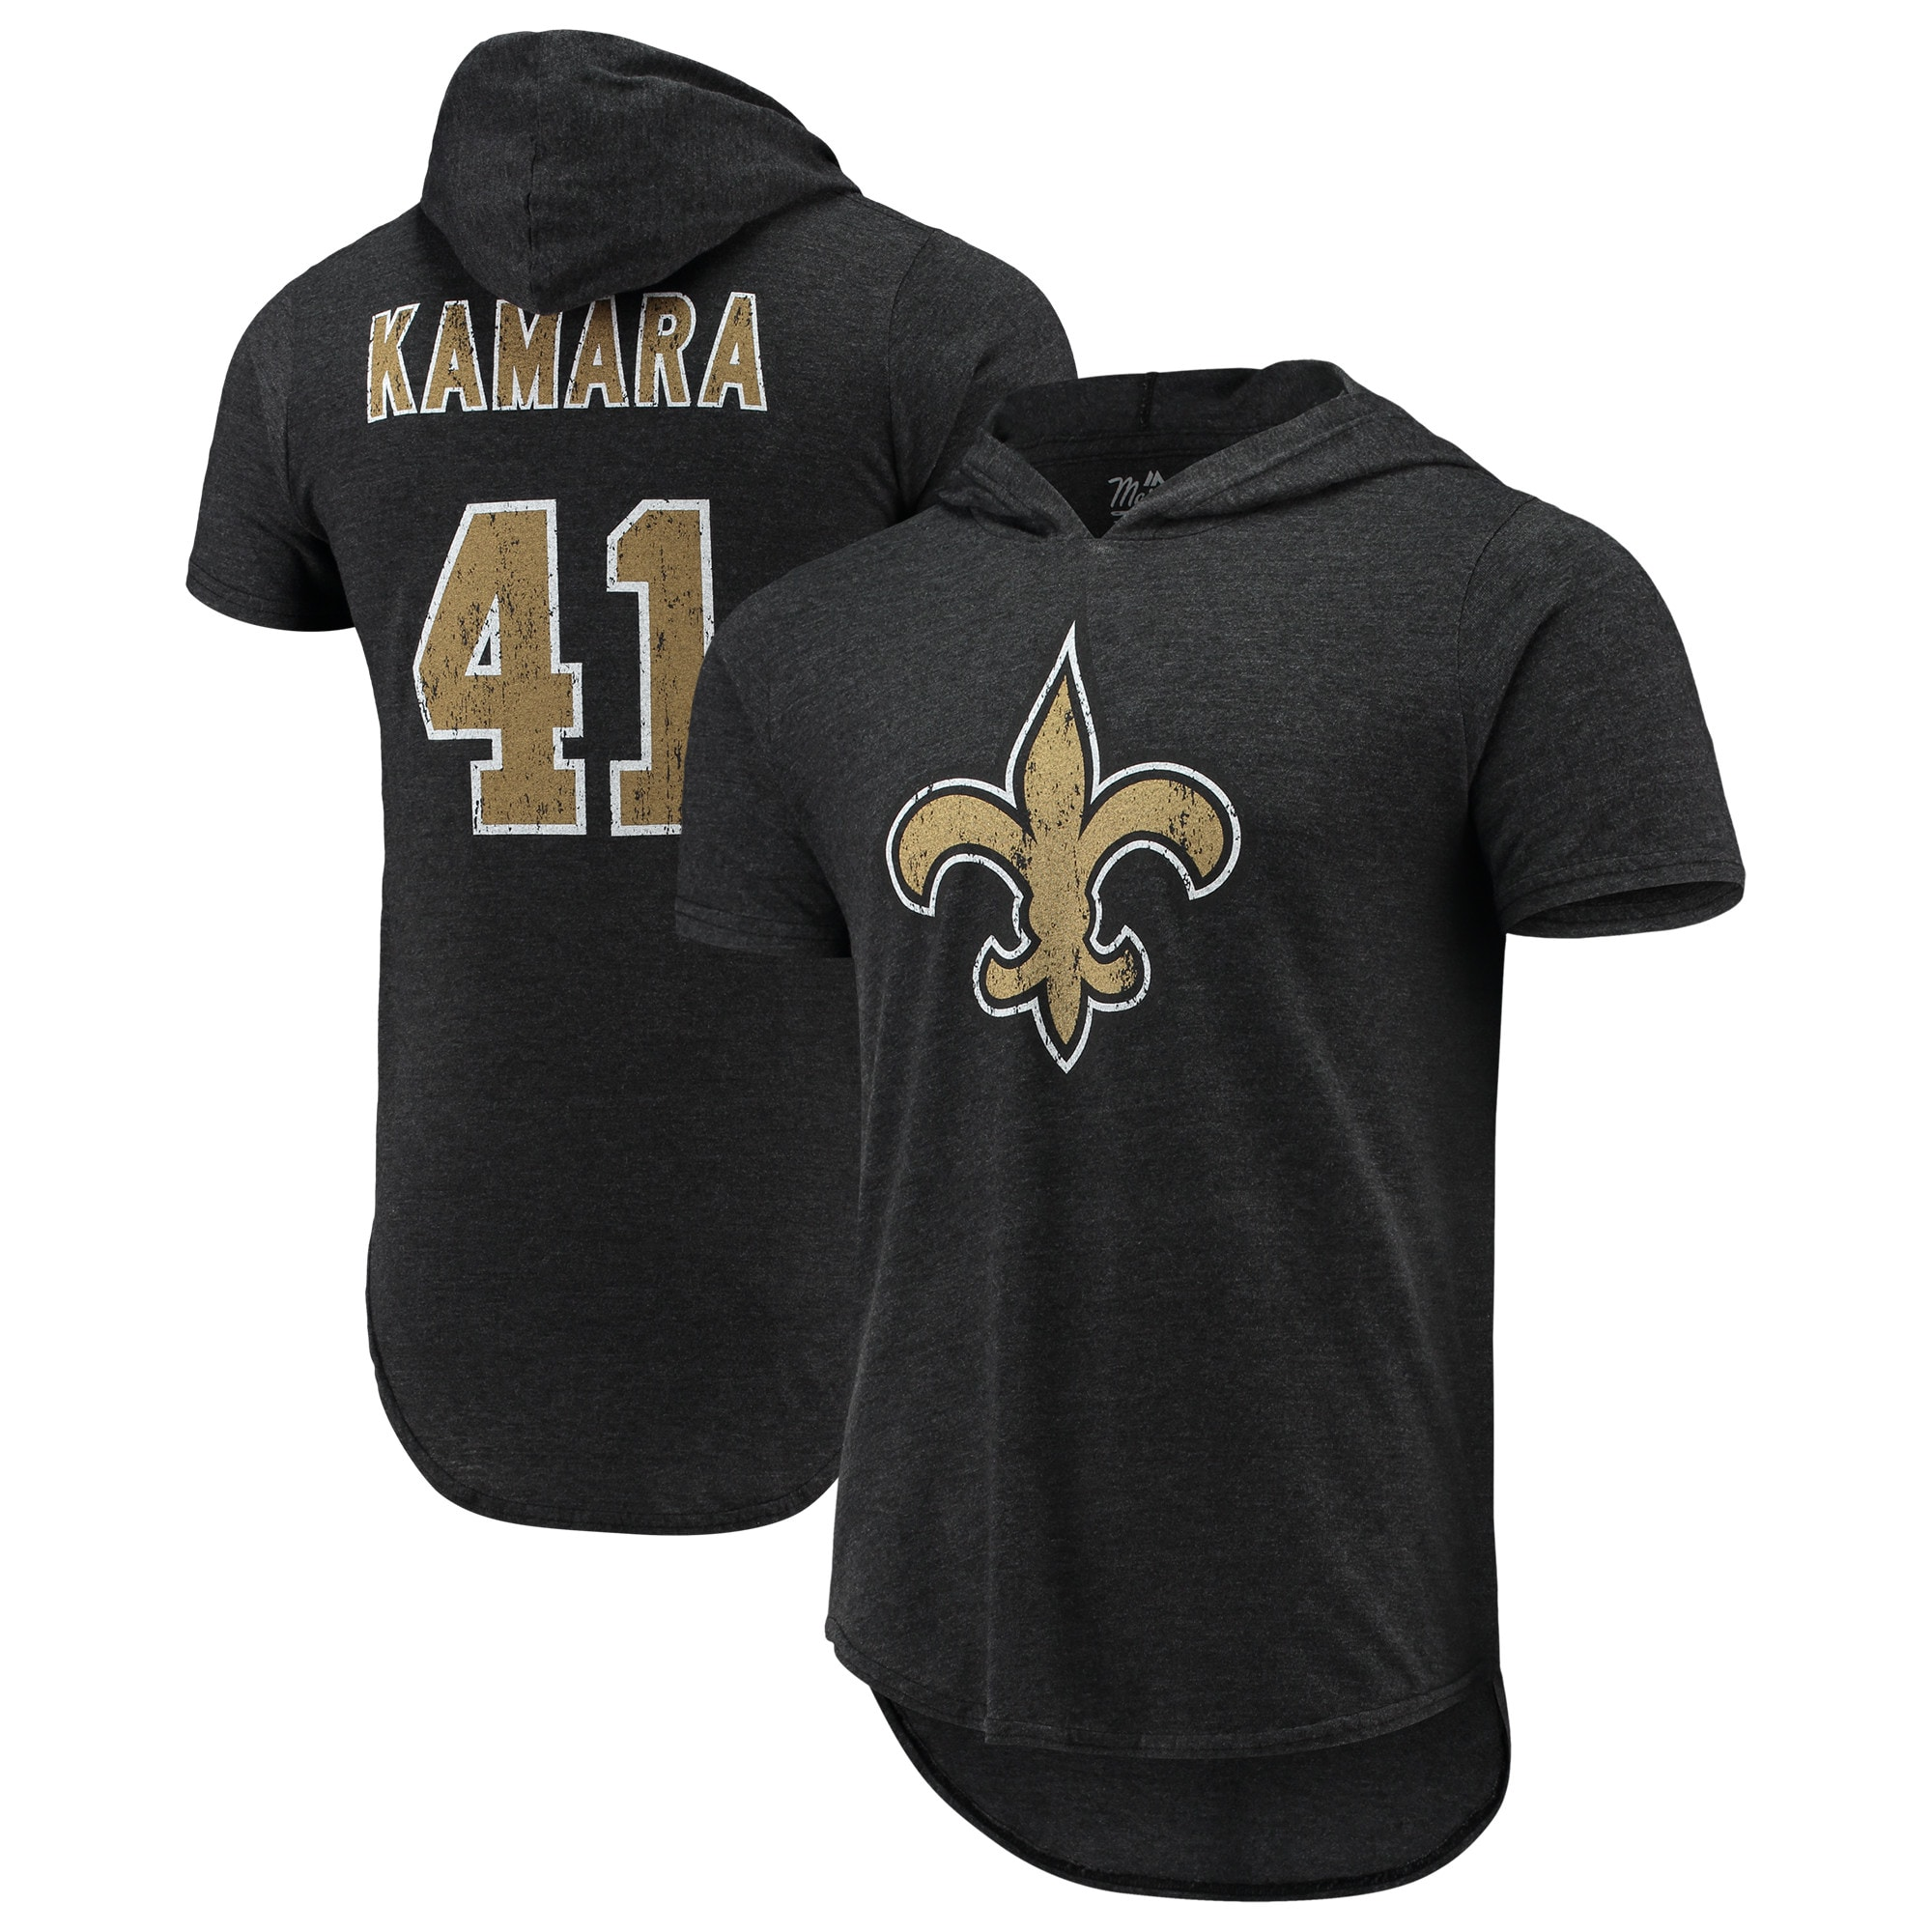 Alvin Kamara New Orleans Saints Fanatics Branded Player Name & Number Tri-Blend Hoodie T-Shirt - Black